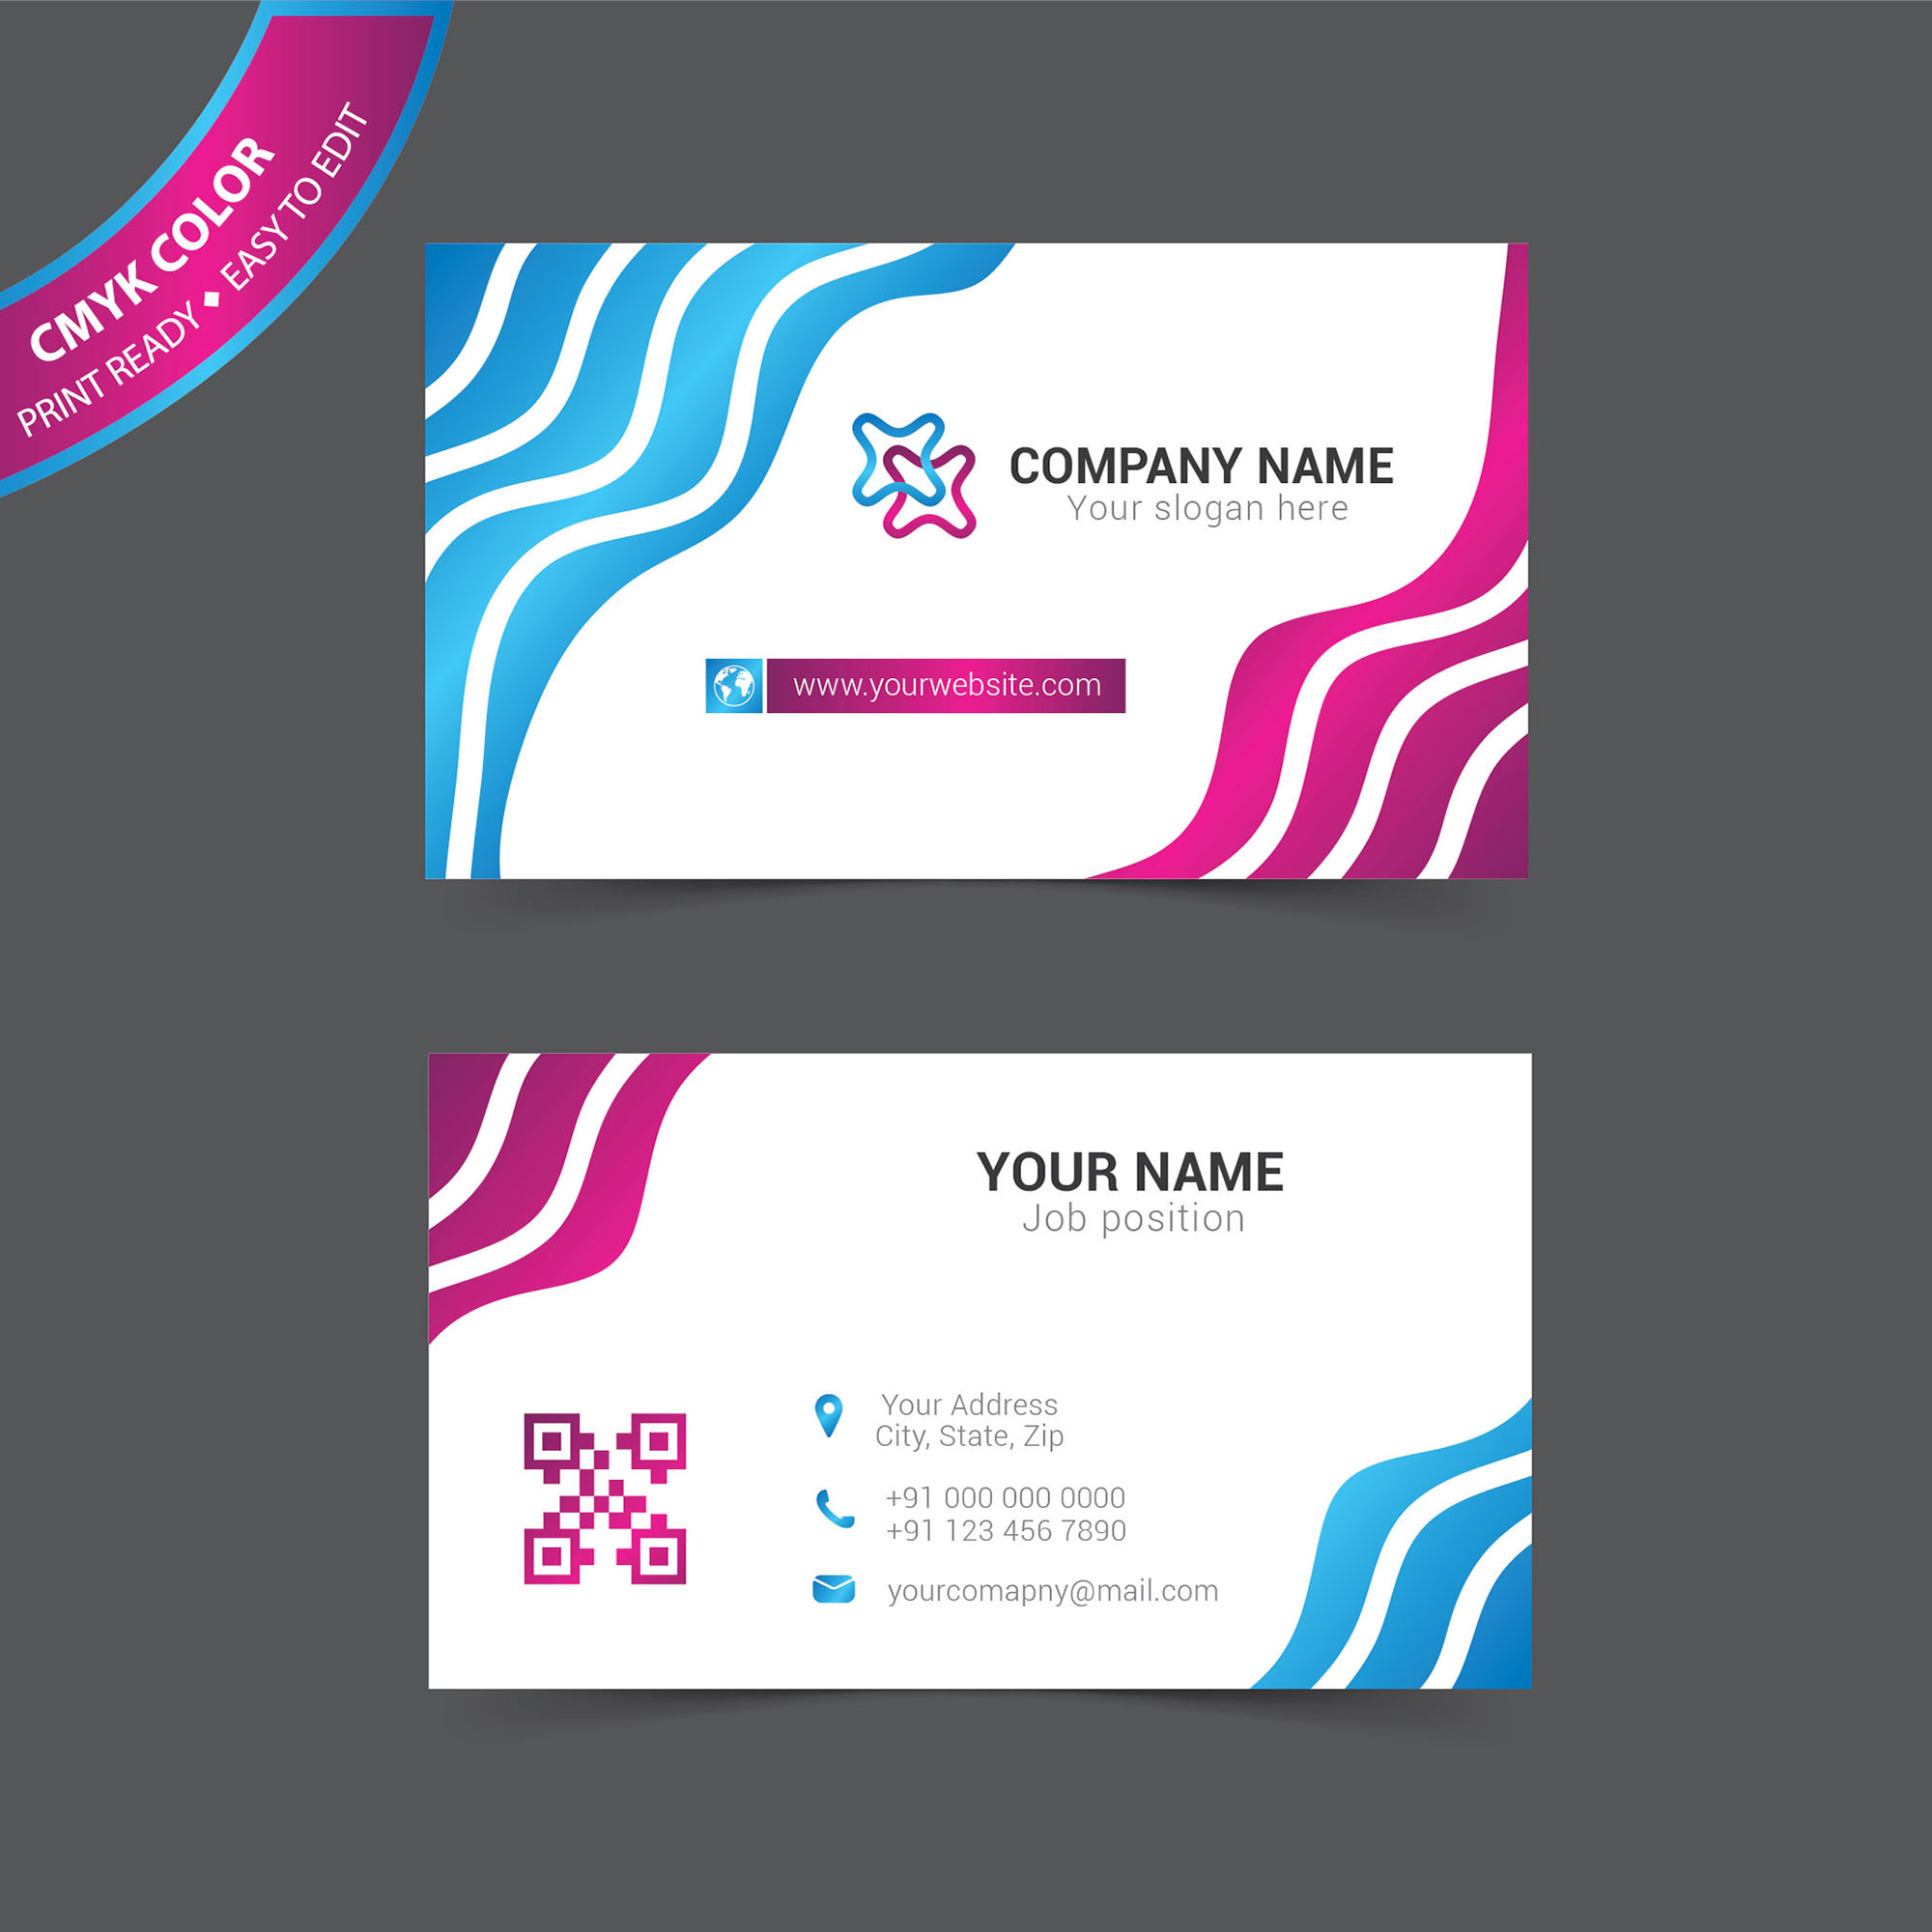 Digital business card free download free vector wisxi business card business cards business card design business card template design templates fbccfo